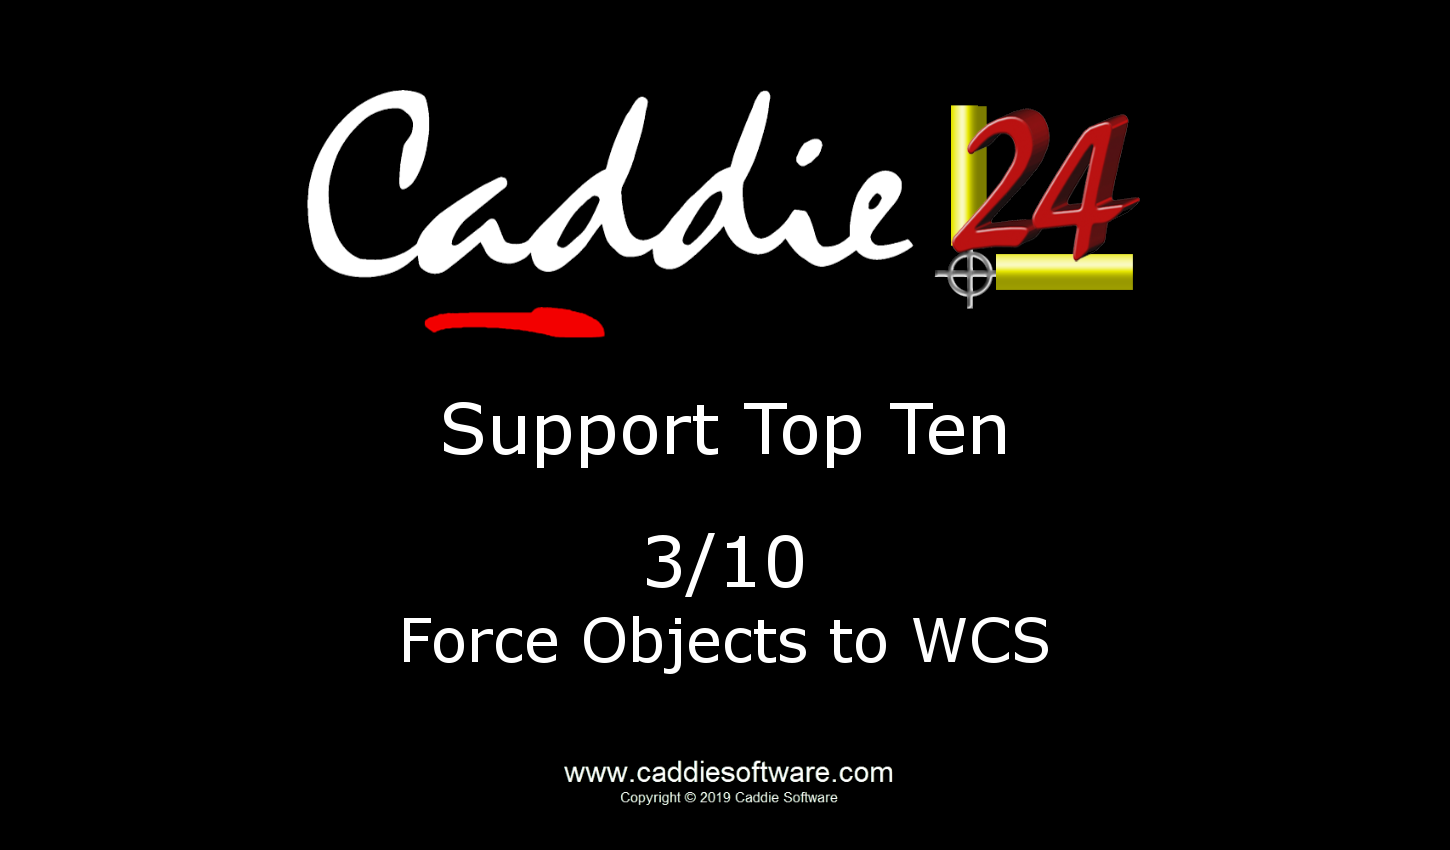 # 3/10 Force Objects to WCS